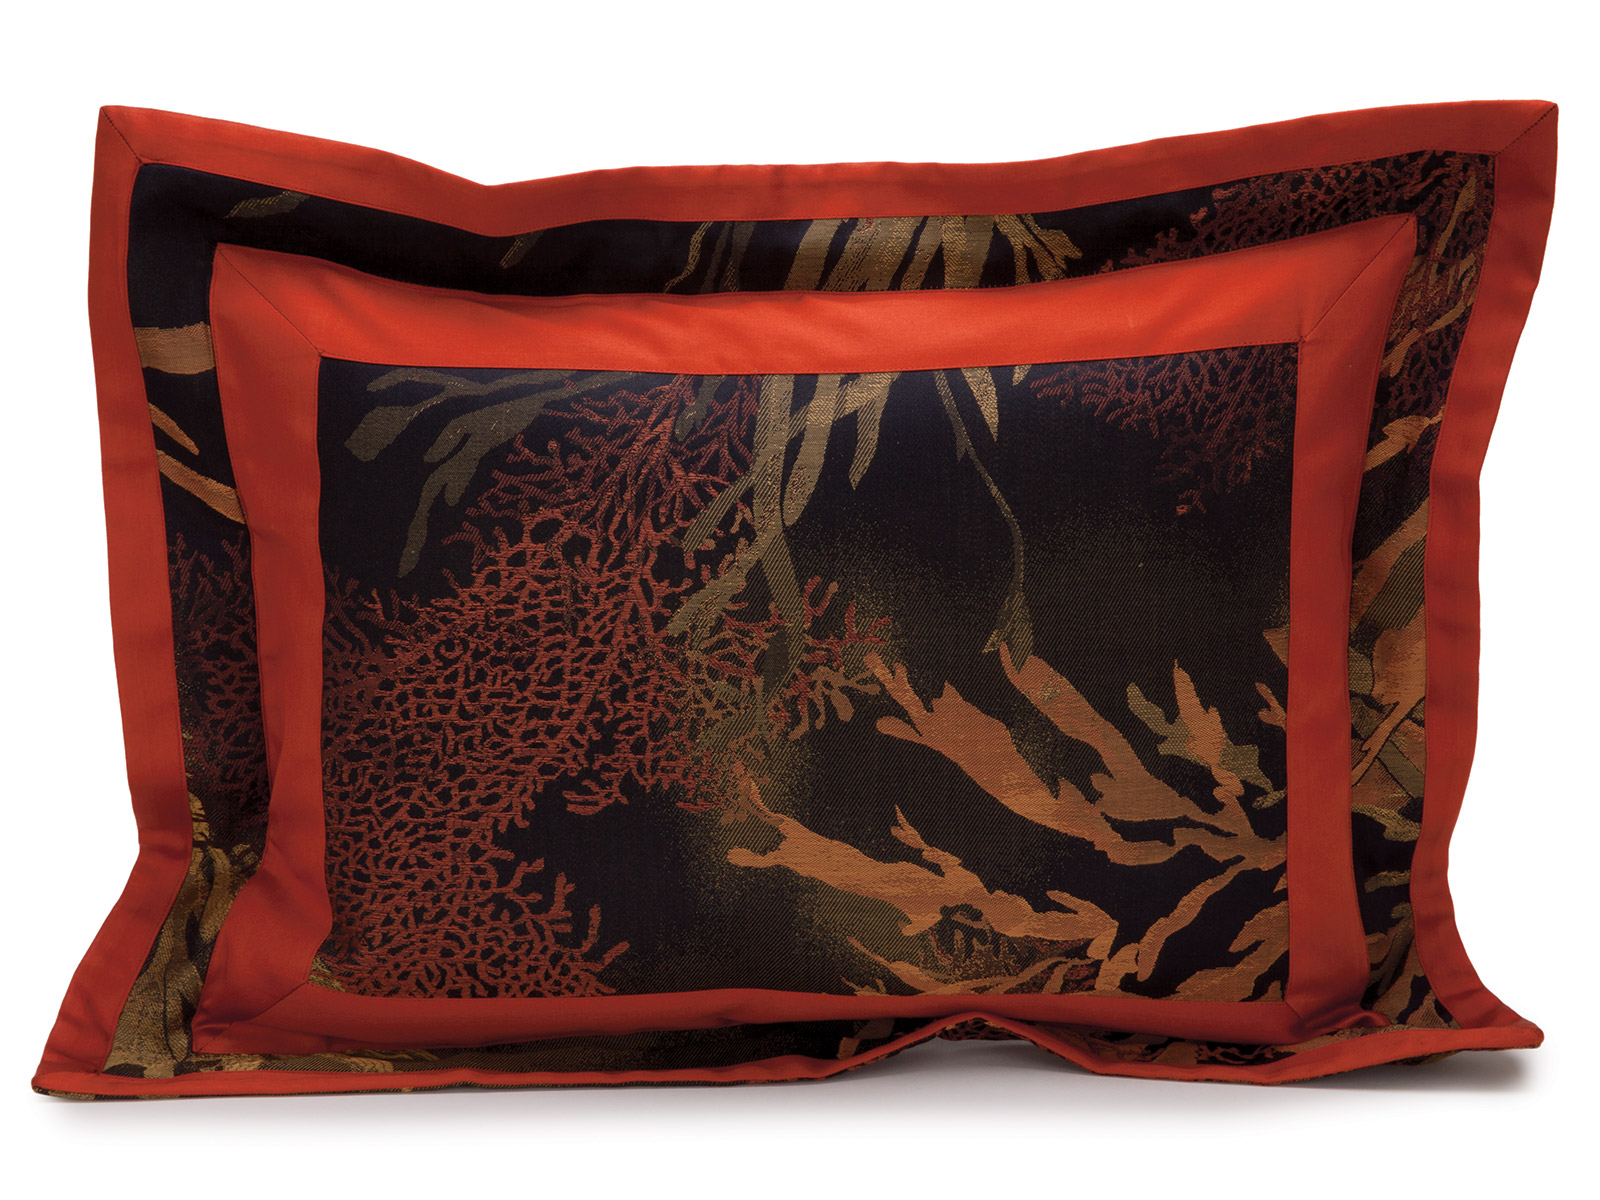 Coral Reef - Luxury Bedding - Italian Bed Linens ...